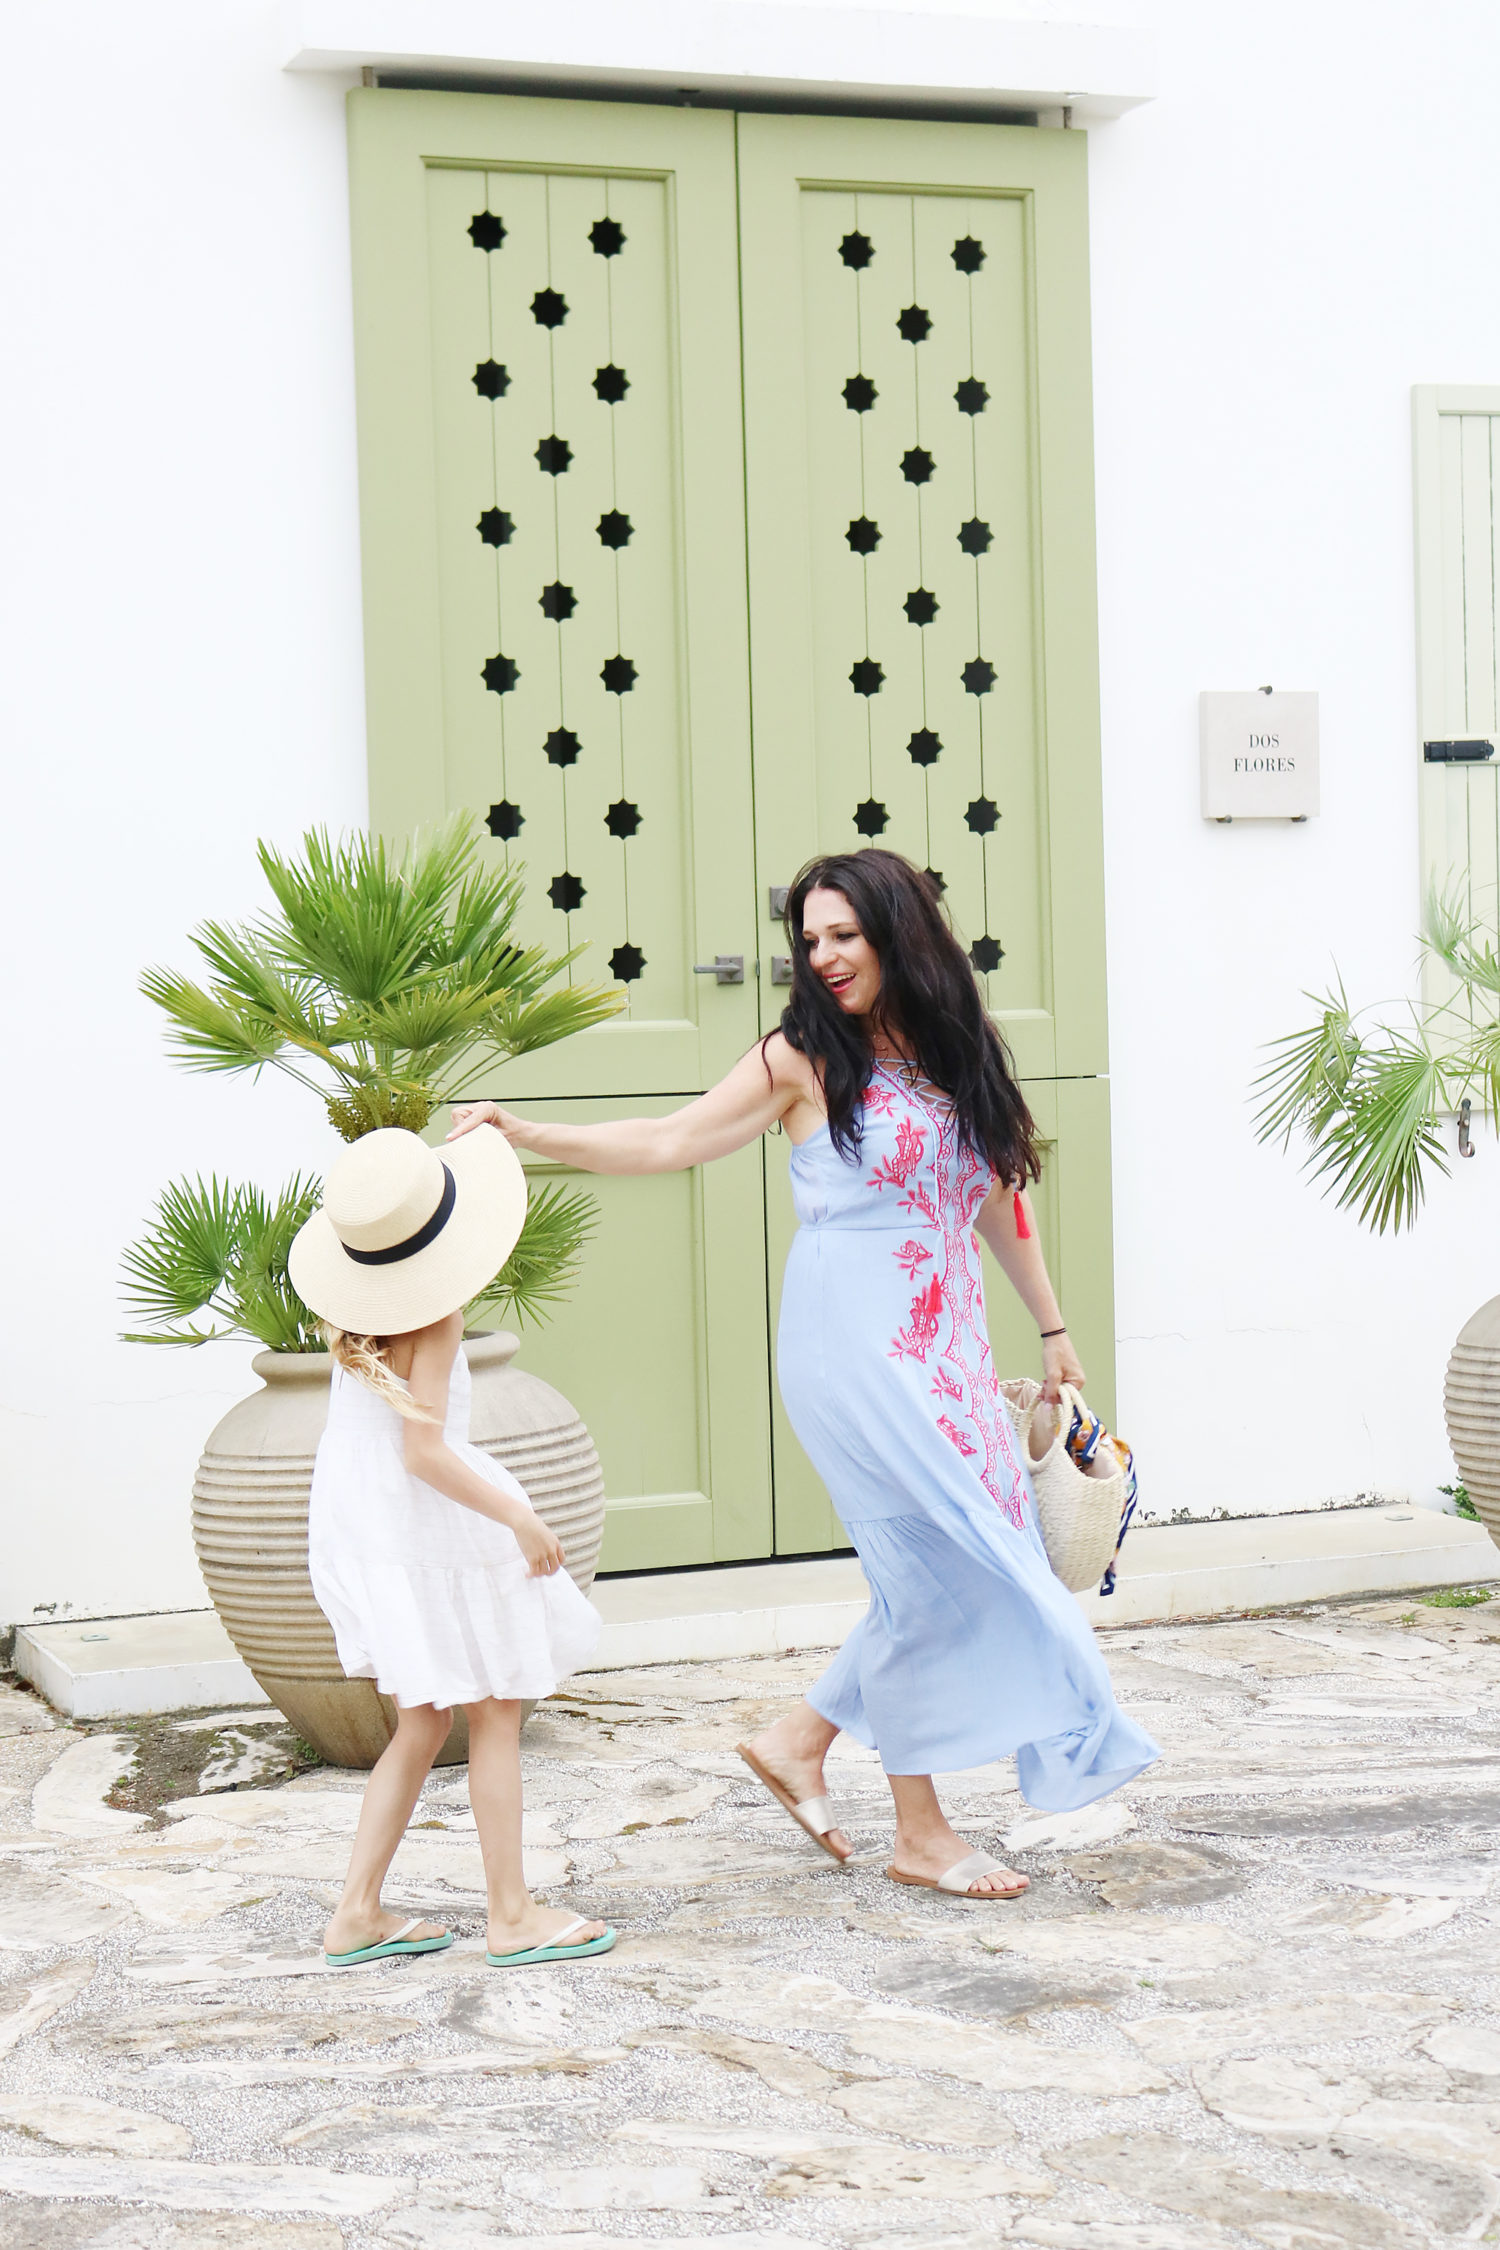 Walking around Alys Beach with daughter in hand in our beach vacation maxi dresses.  We love how beautiful this area of 30A florida | what maxi dress to pack for a beach trip || Darling Darleen